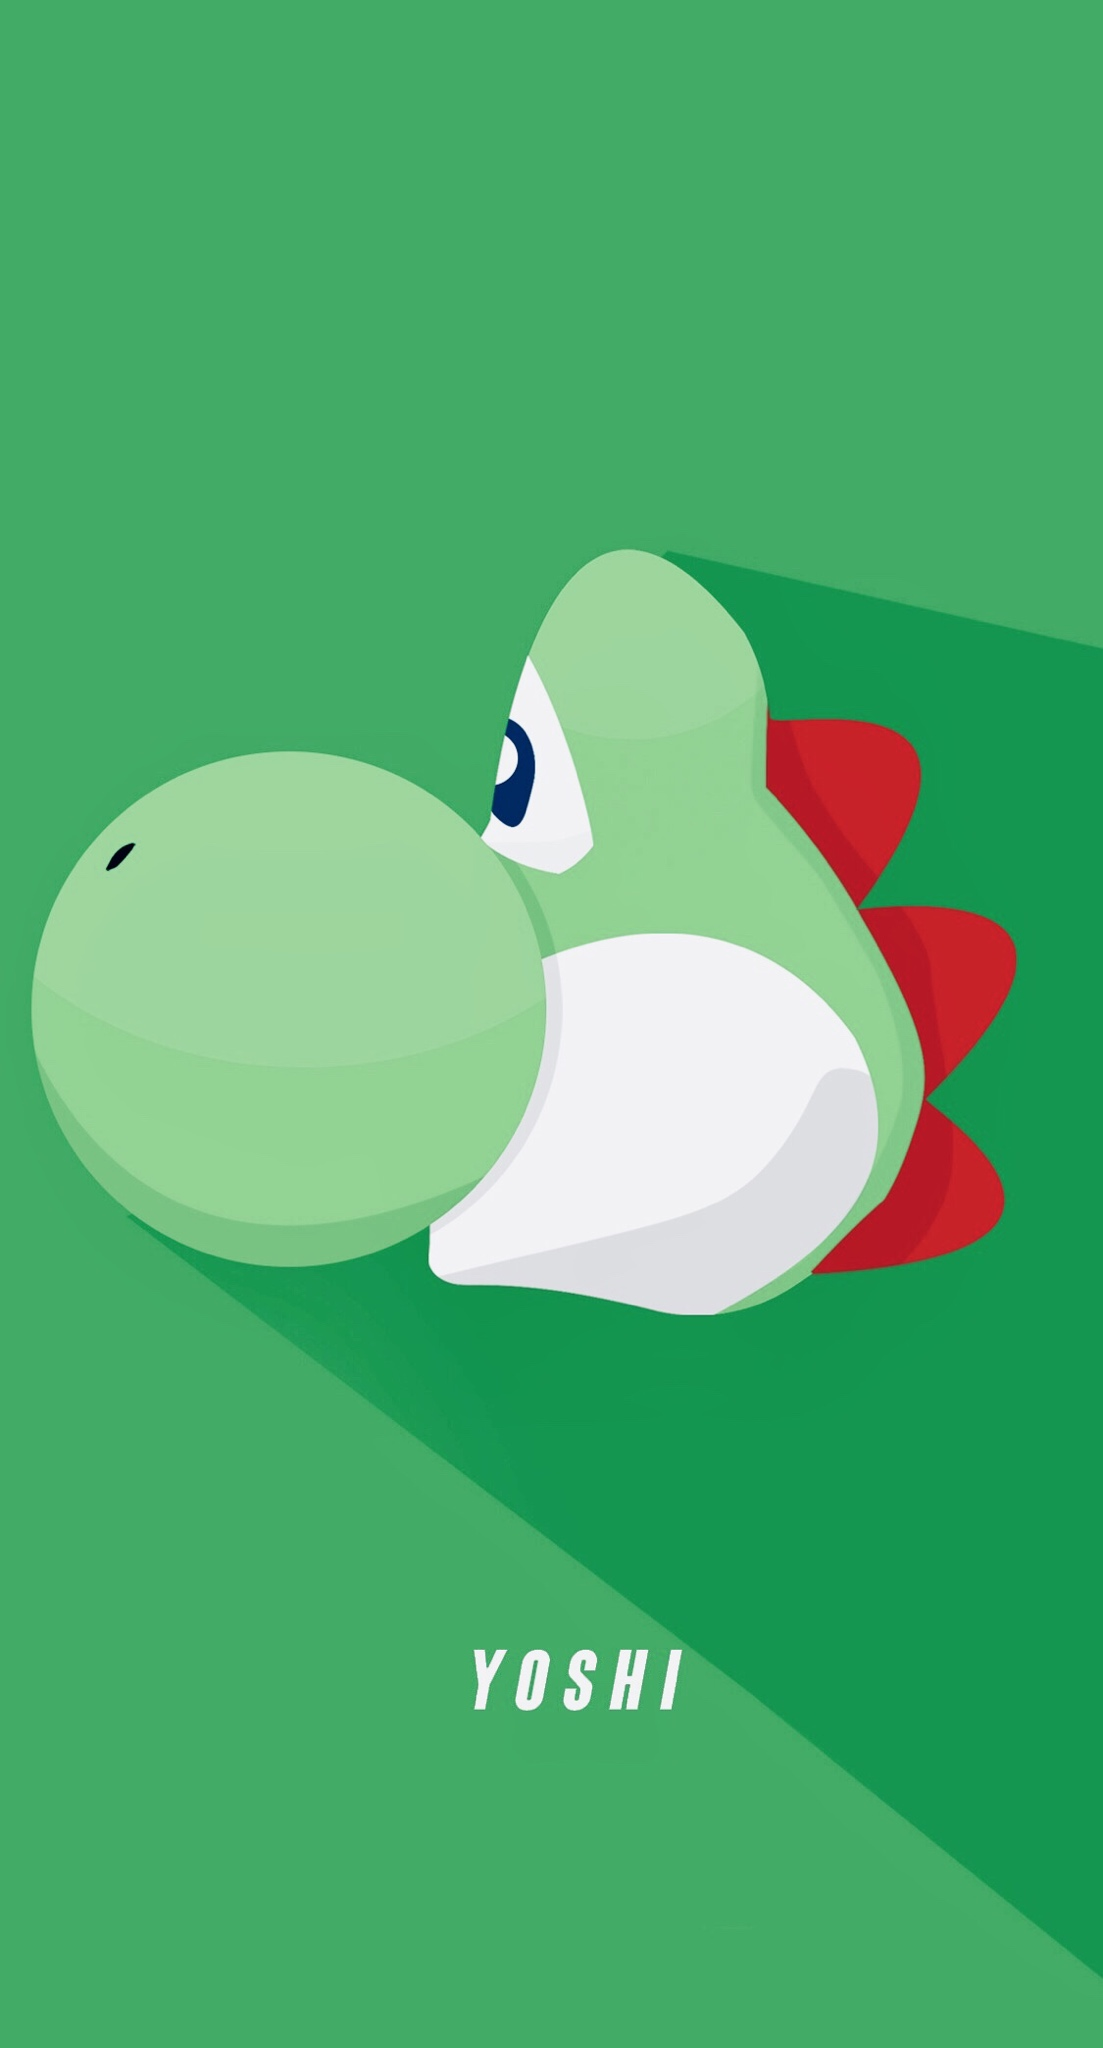 Yoshi Iphone Wallpaper Posted By Samantha Peltier